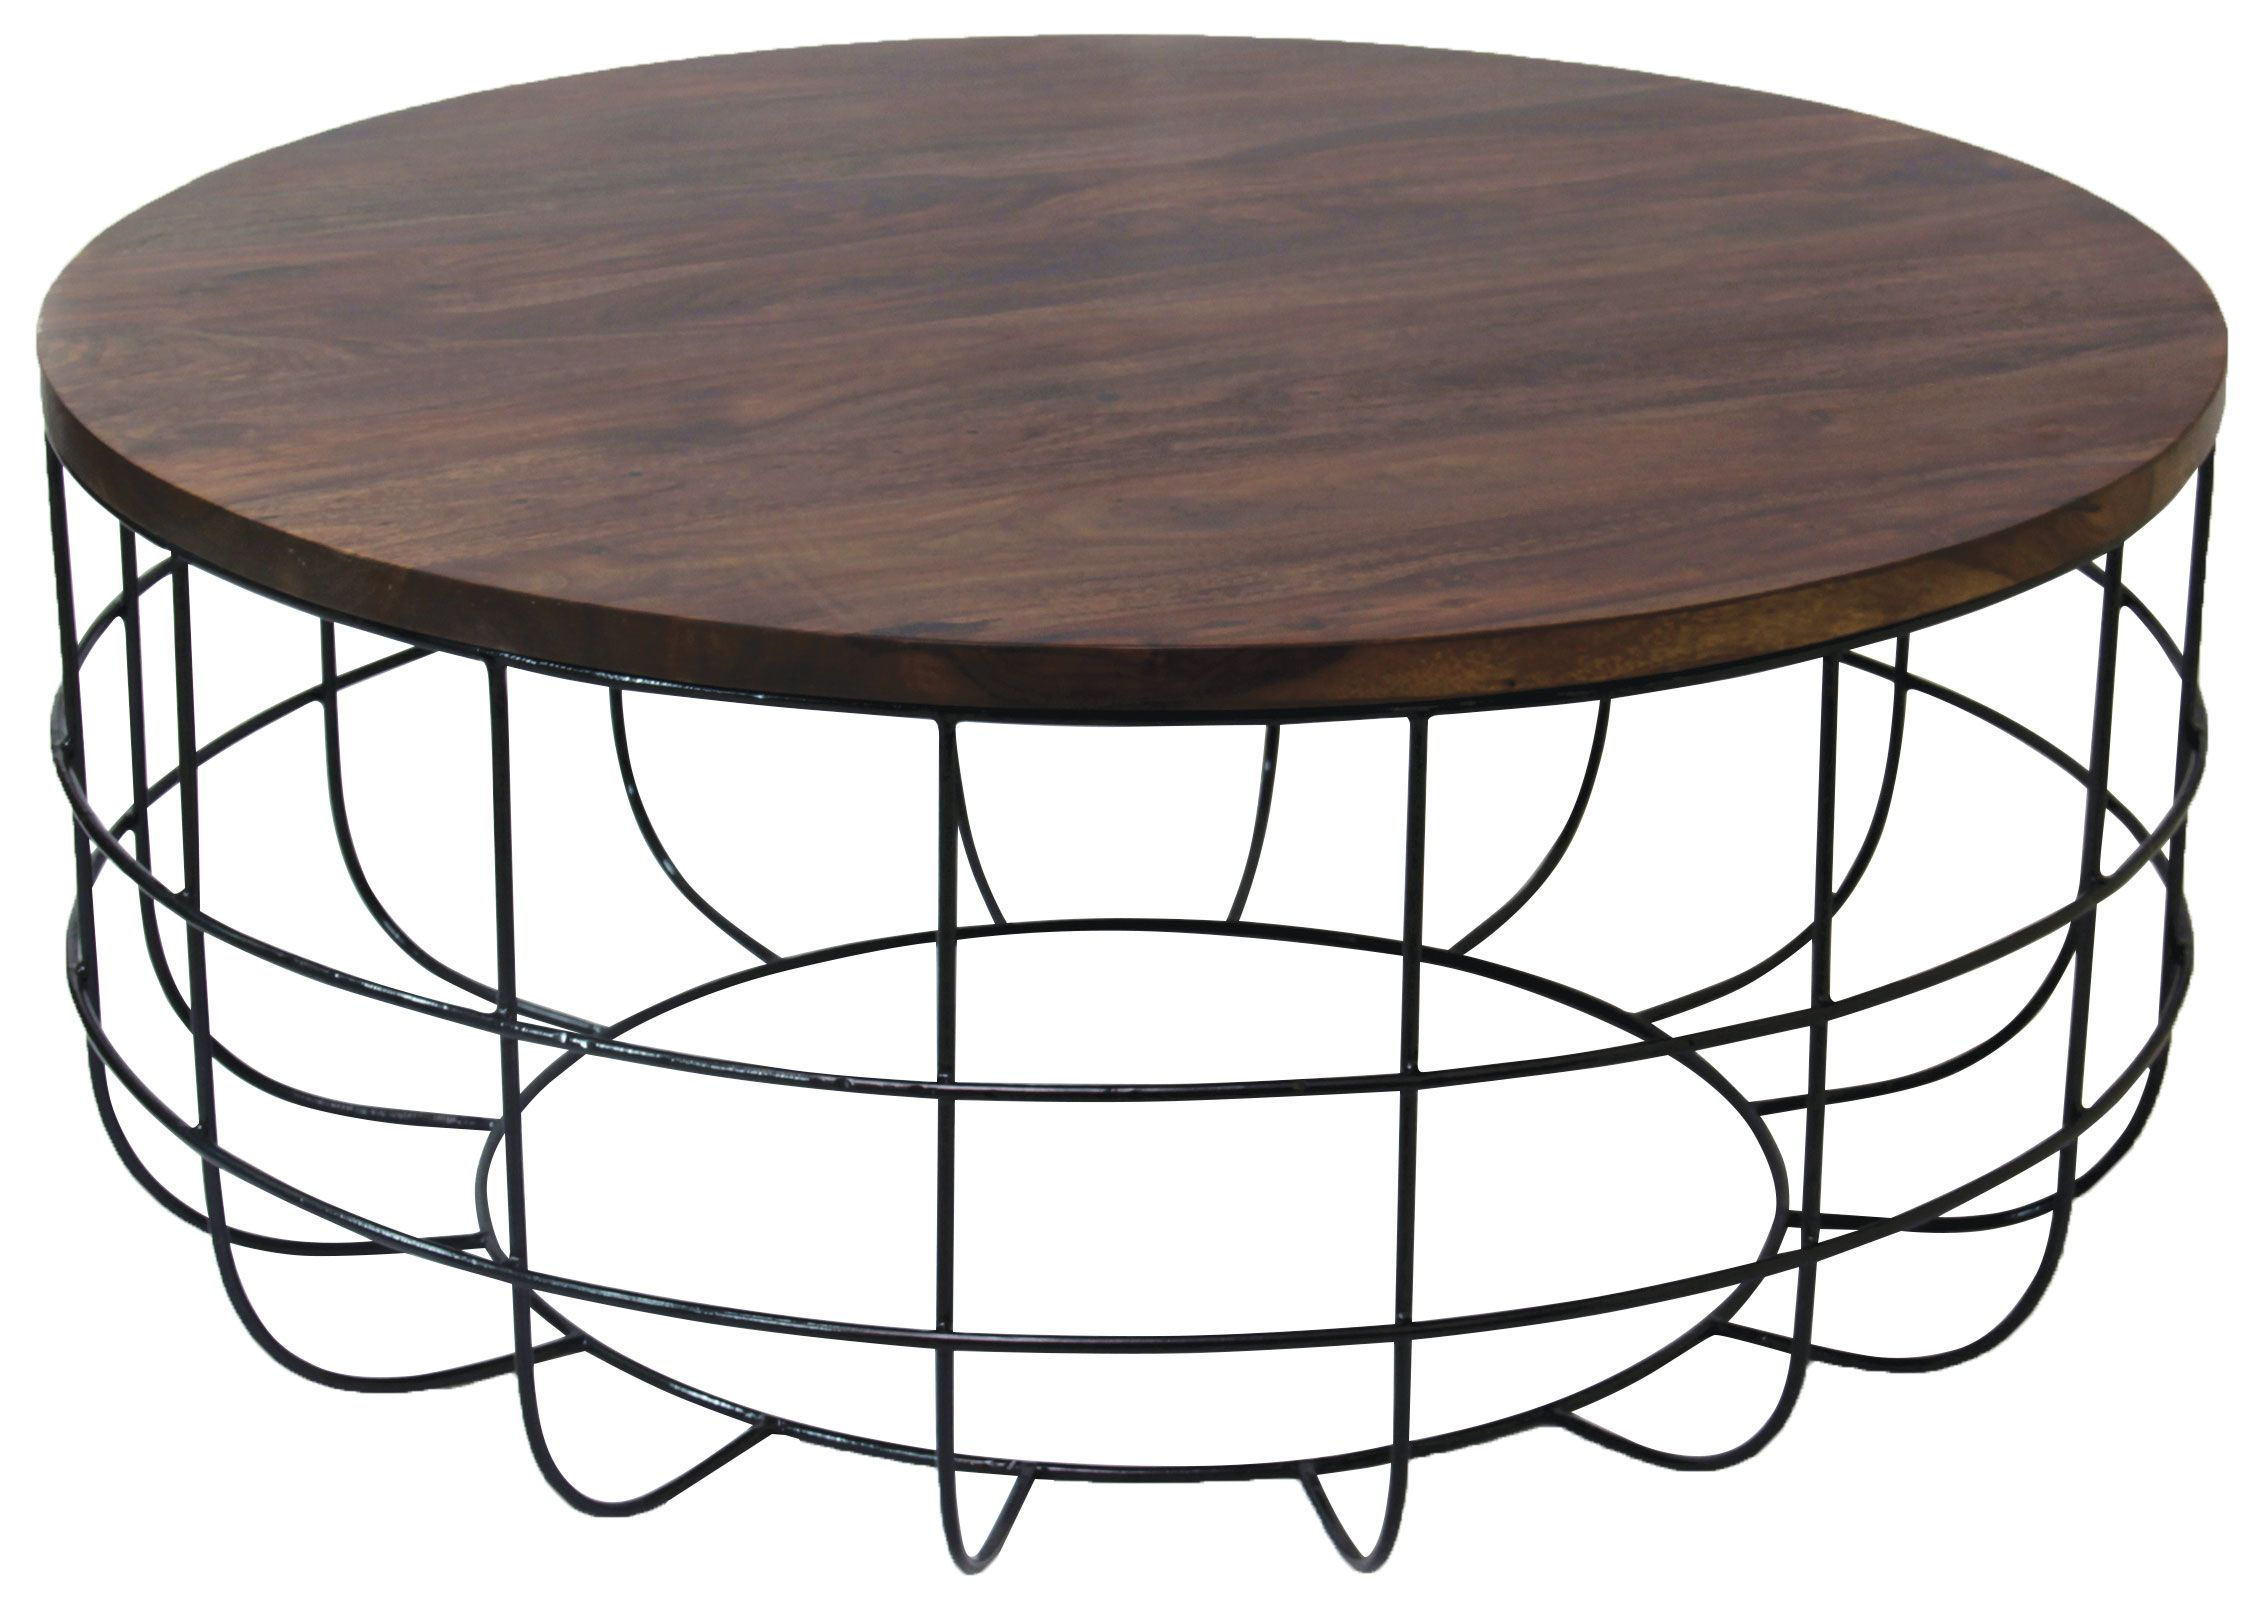 Cage Coffee Table Available From Big Save Furniture Now Www